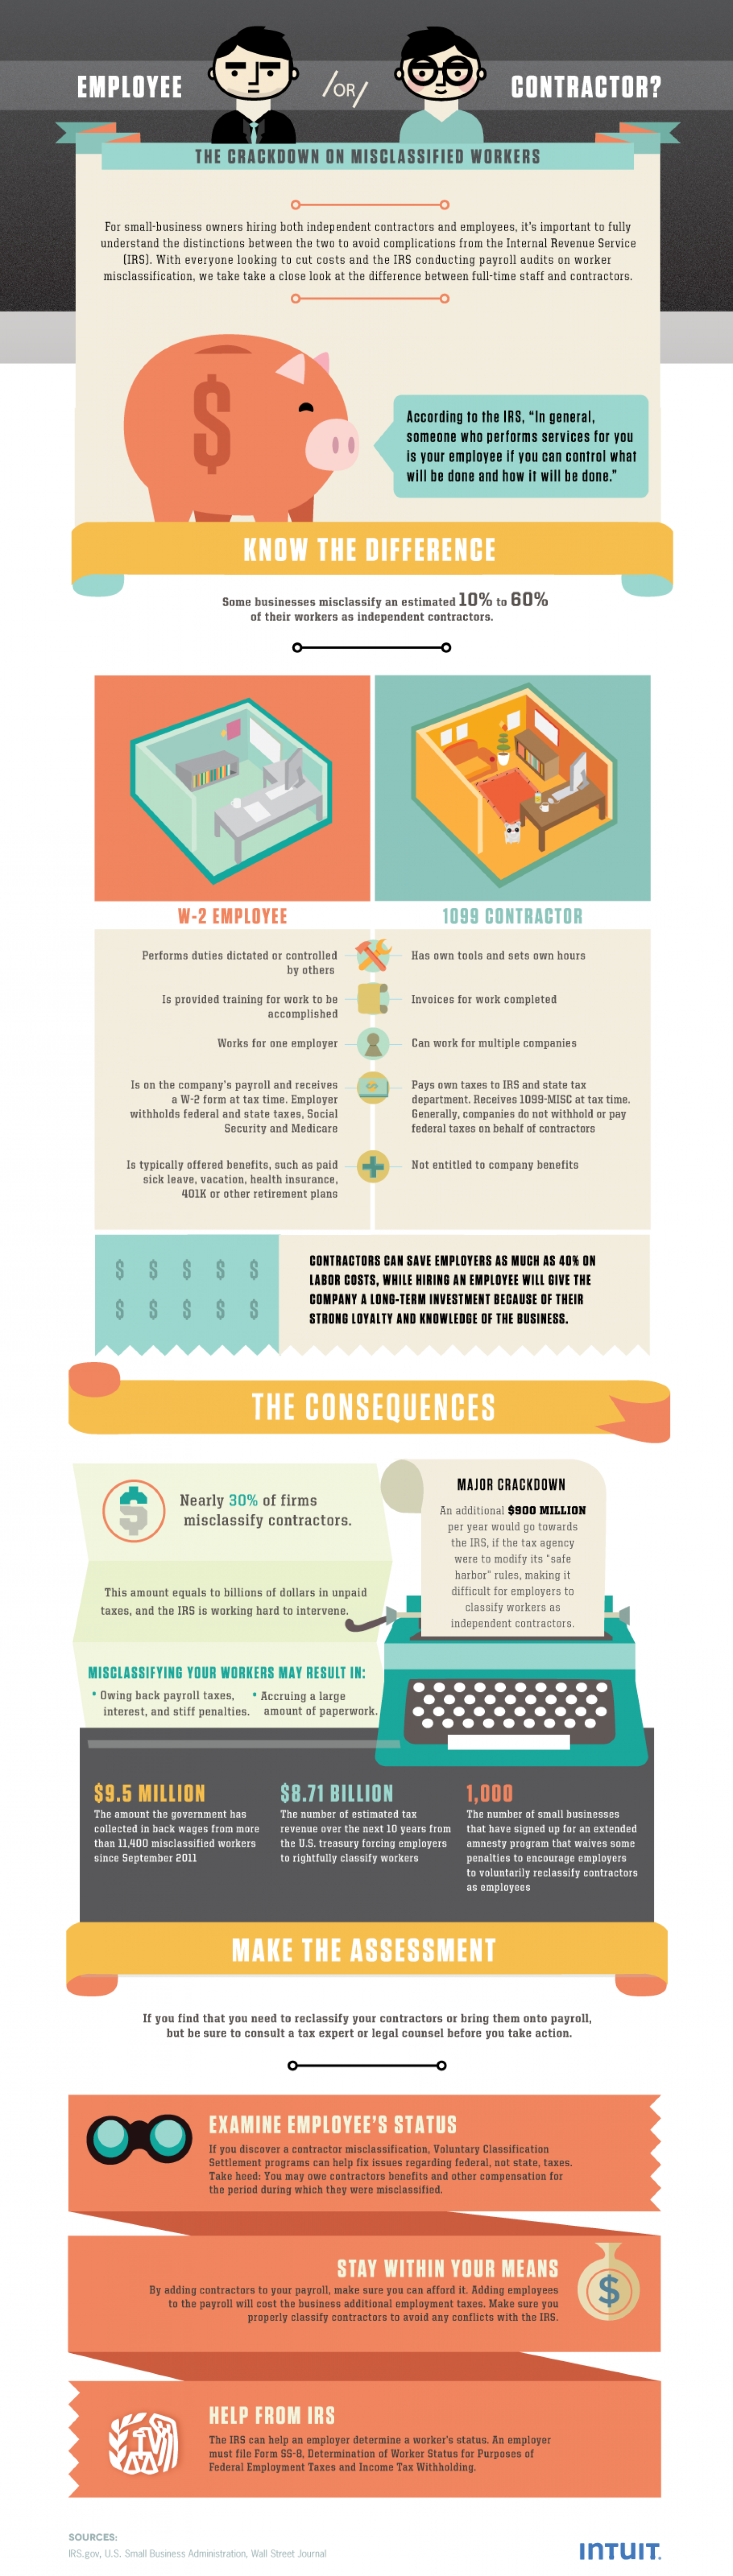 Is your worker a 1099 contractor or a W2 employee? Infographic